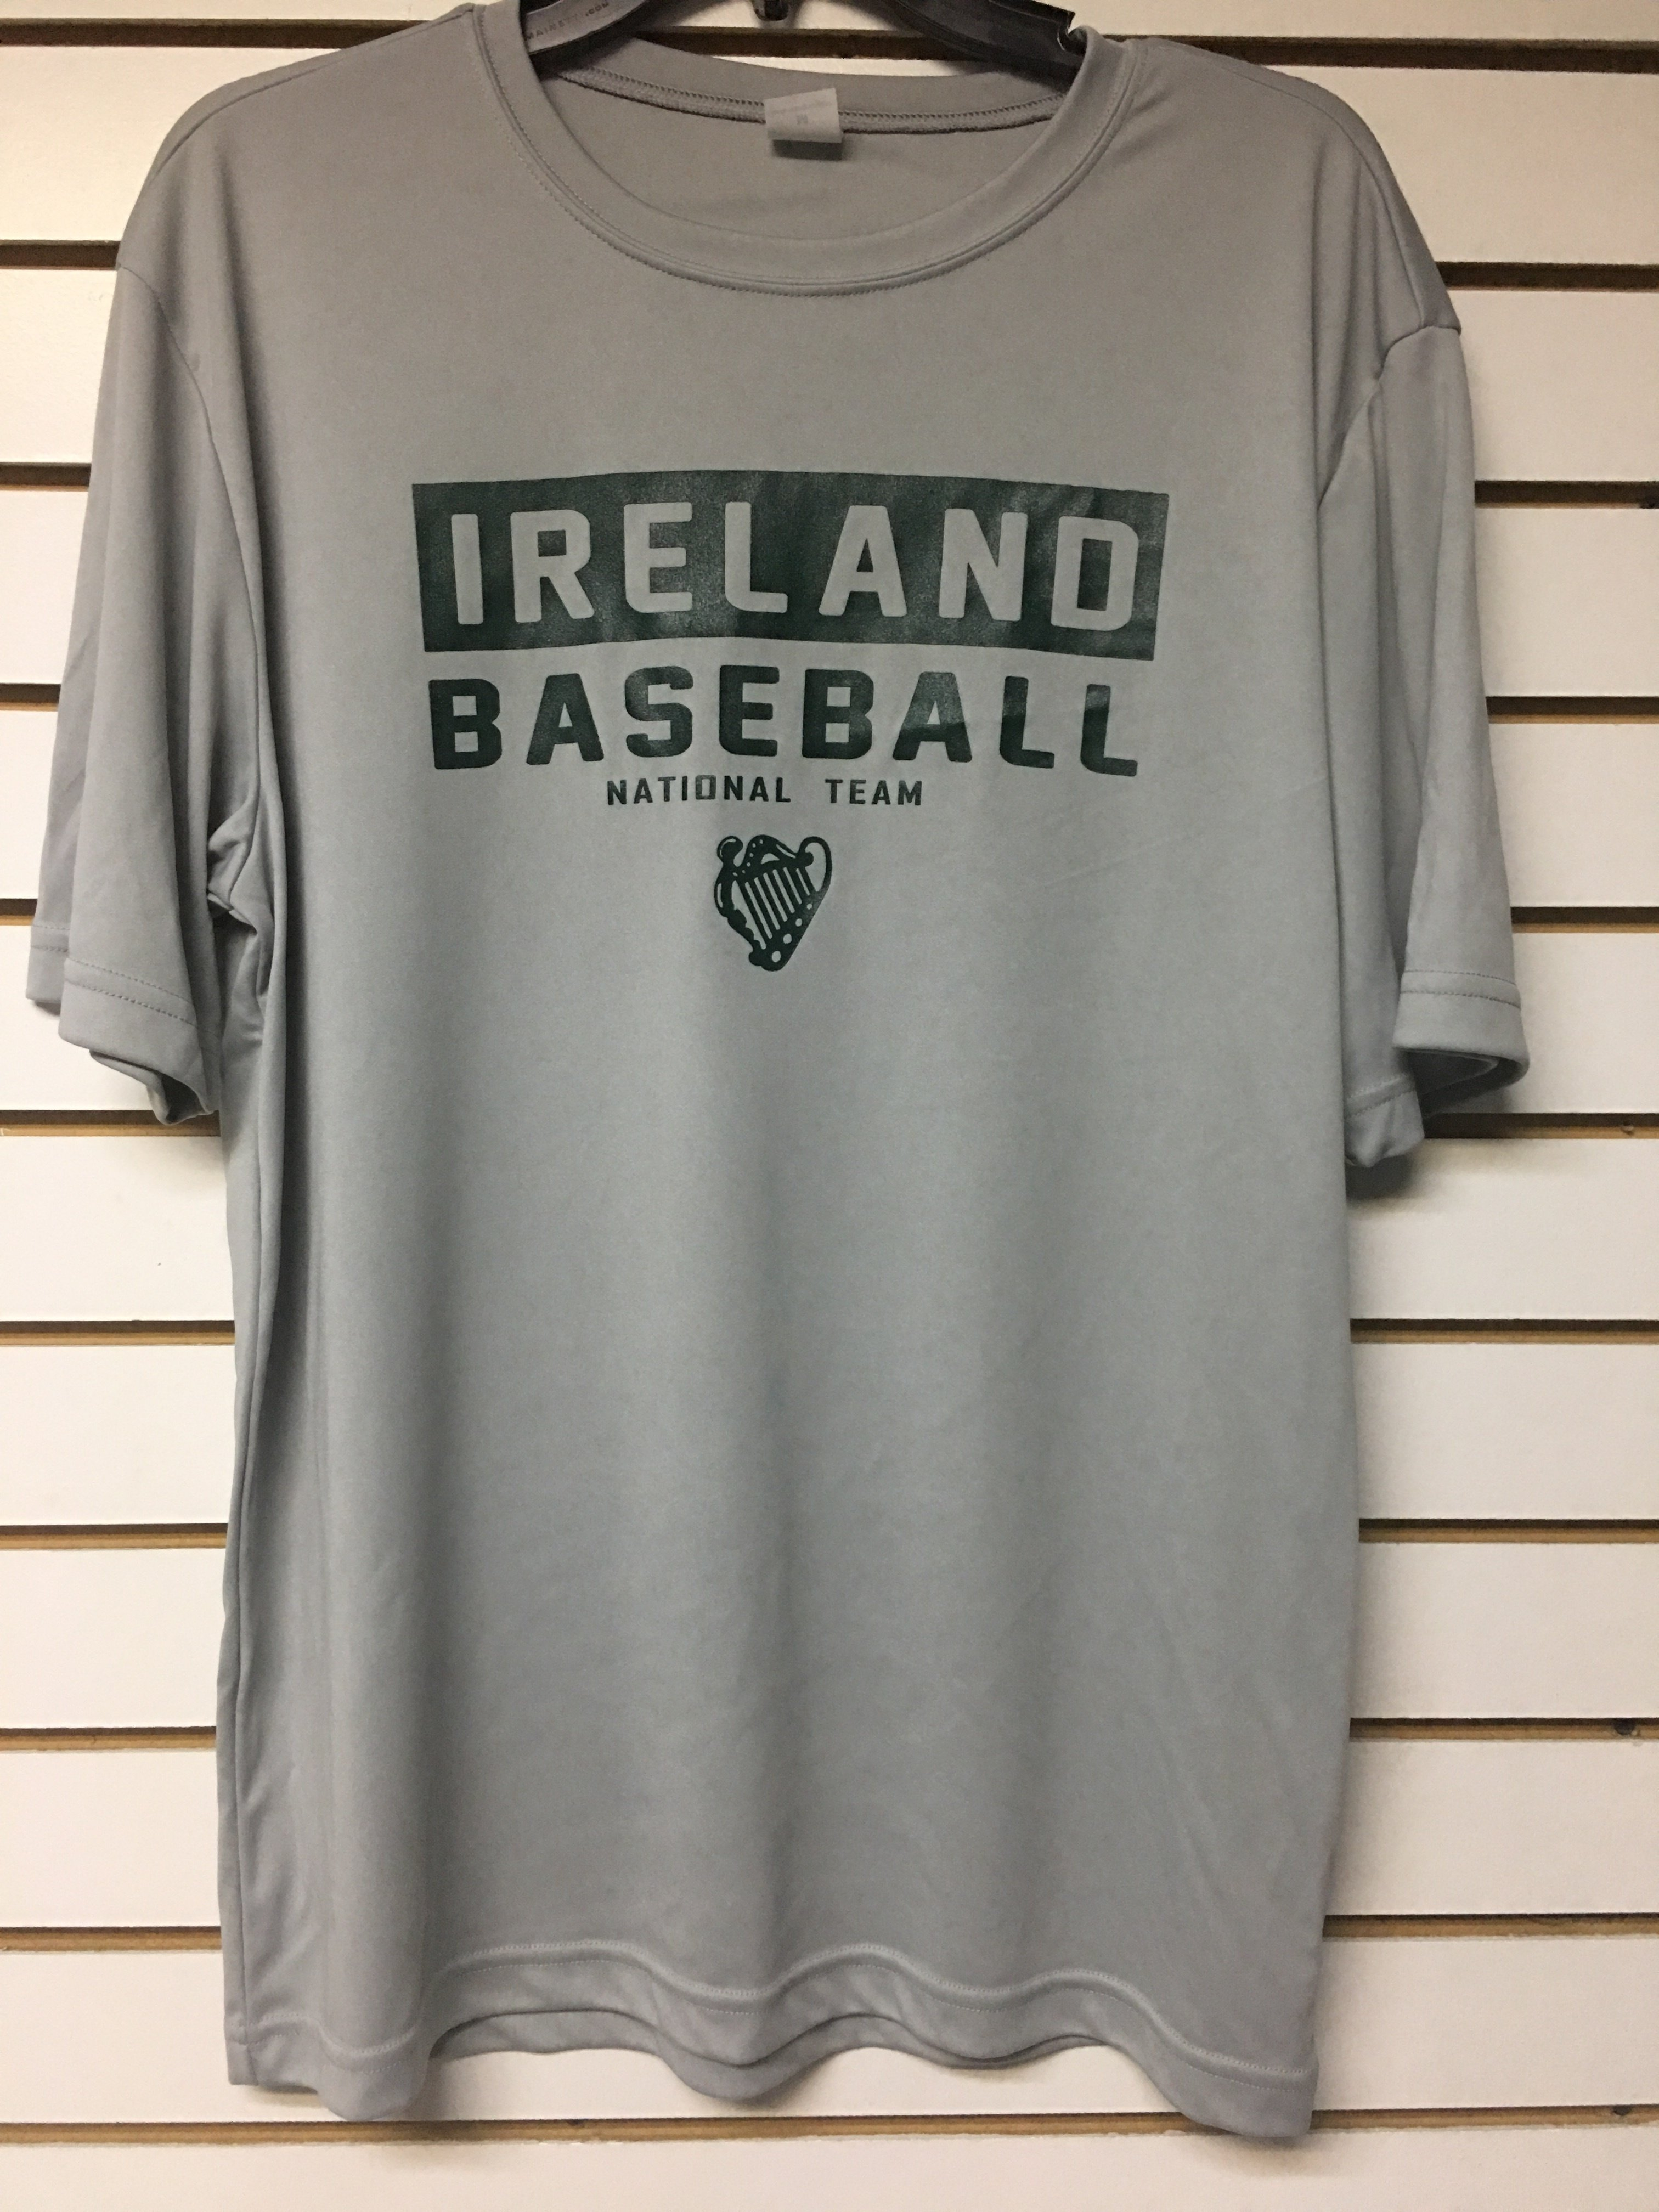 Gray Ireland Baseball Dri Fit Shirt by Sportek 00006